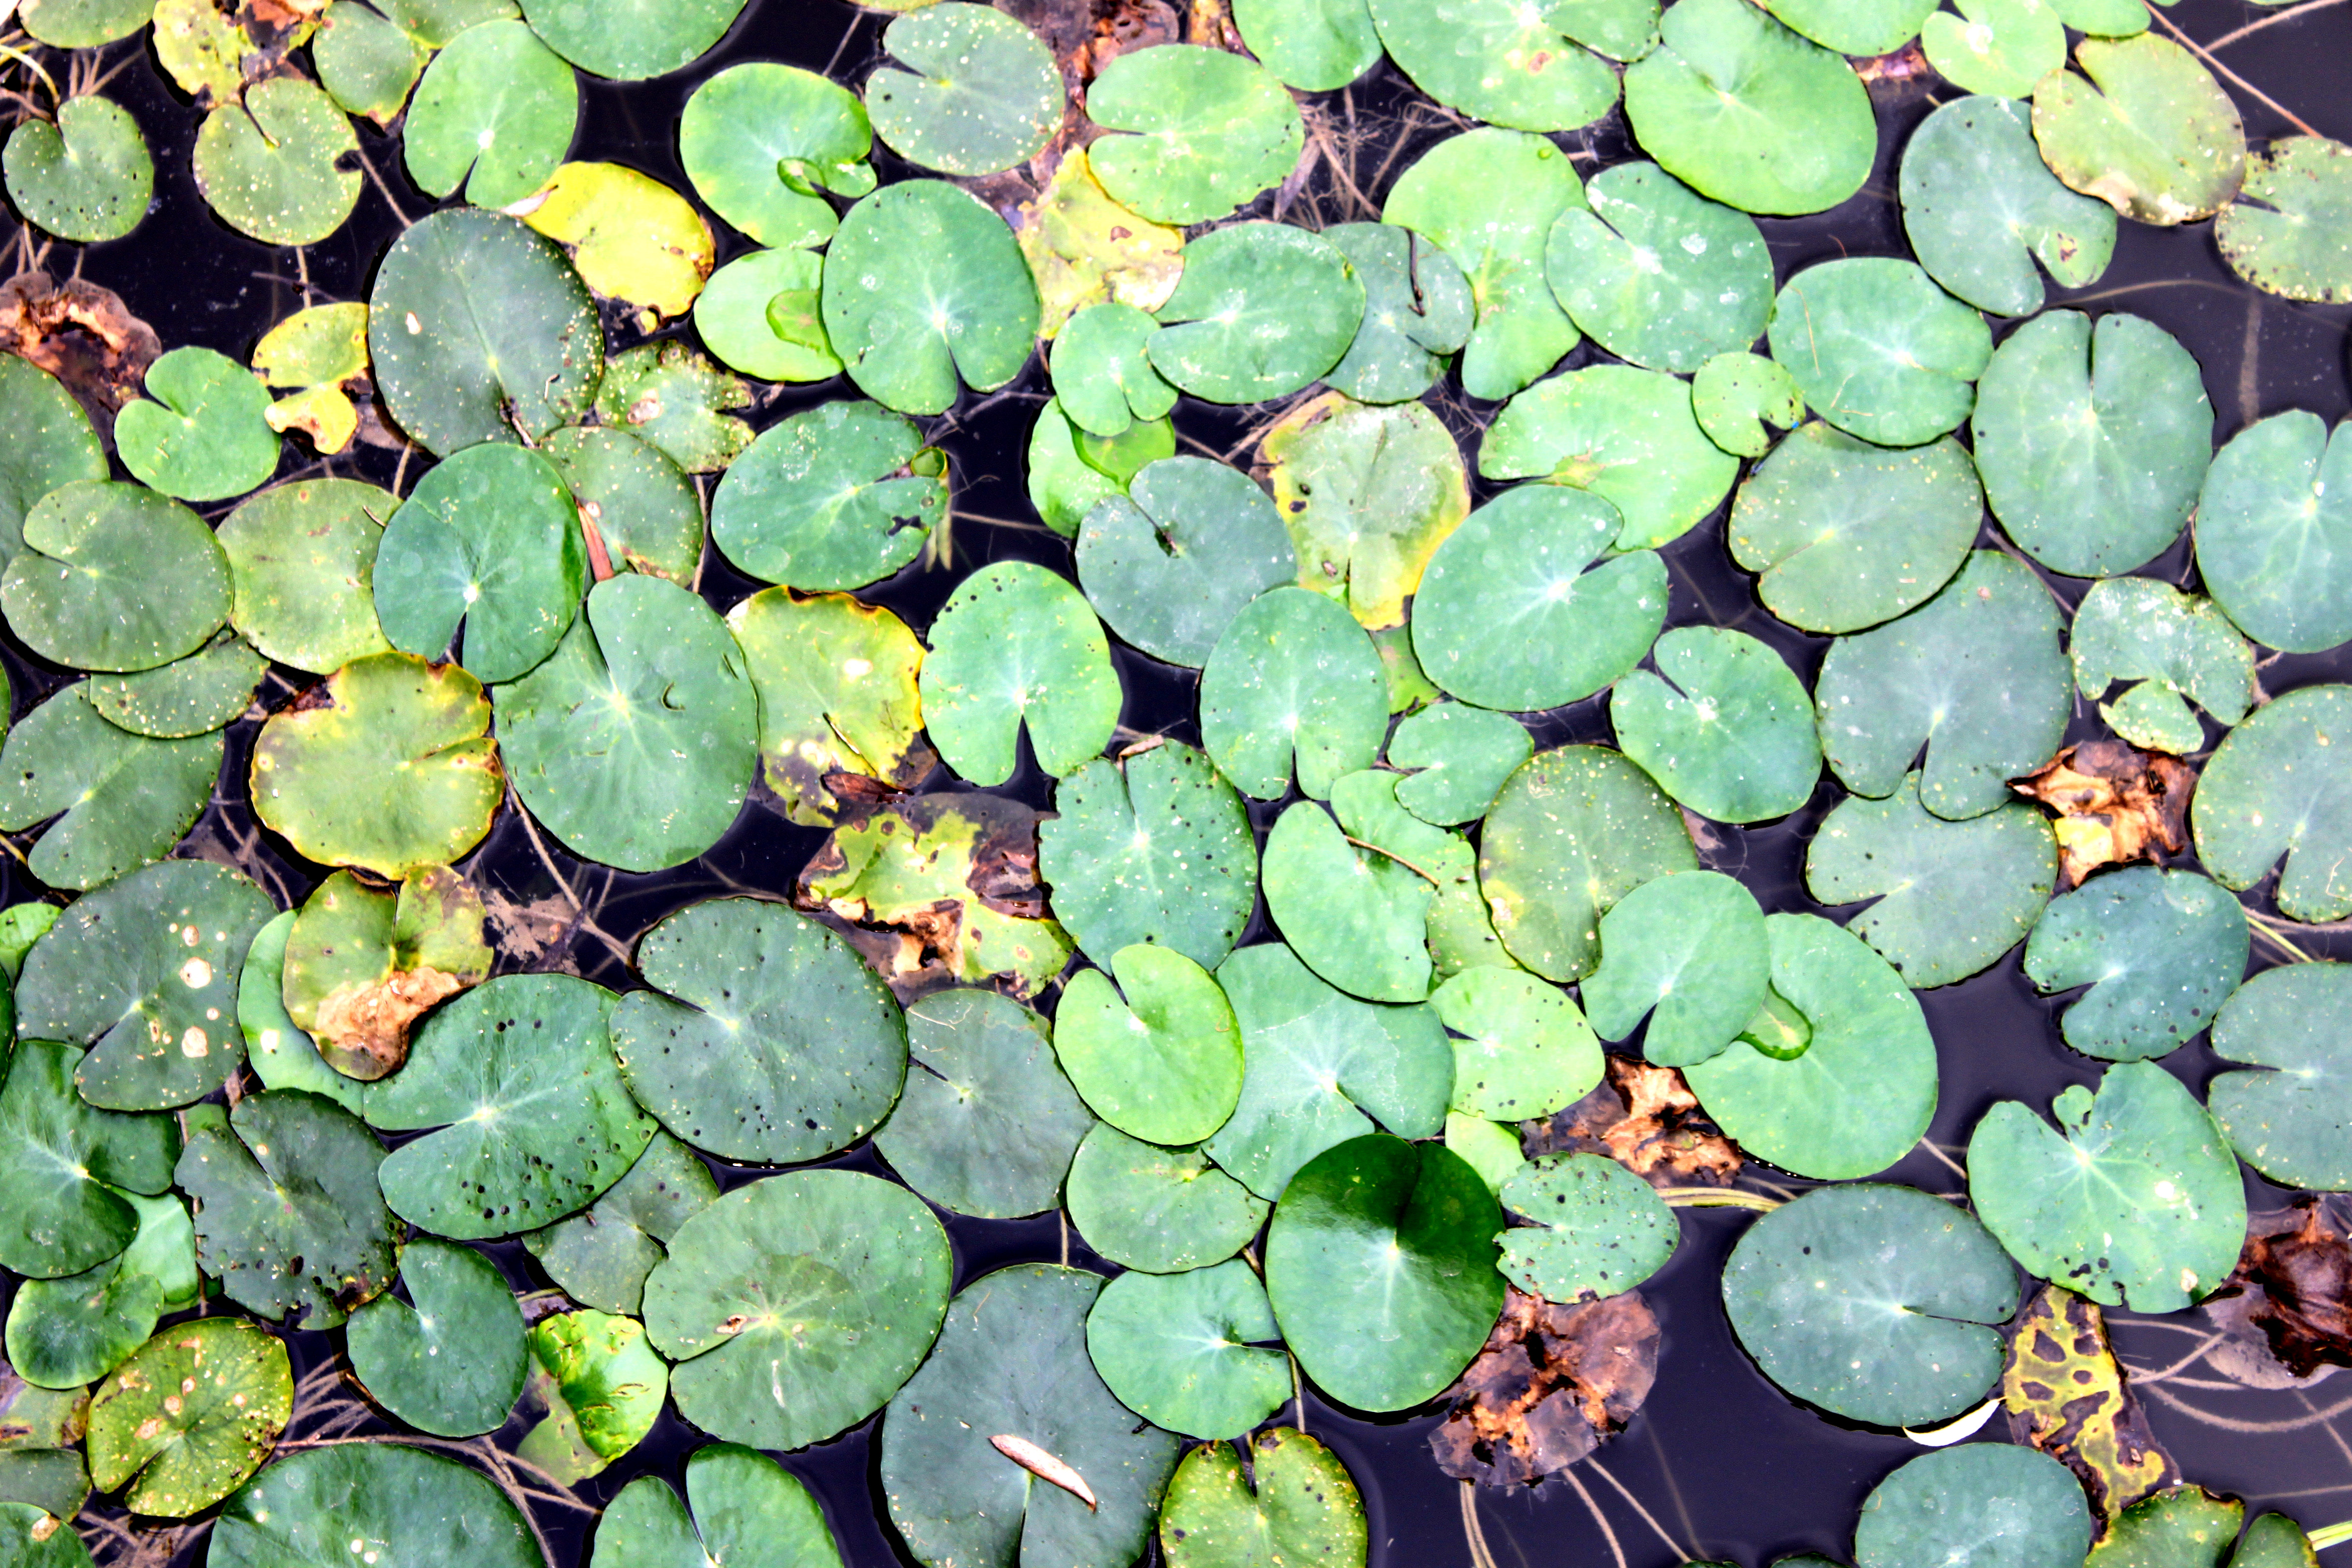 How To Kill Duckweed Cheaply